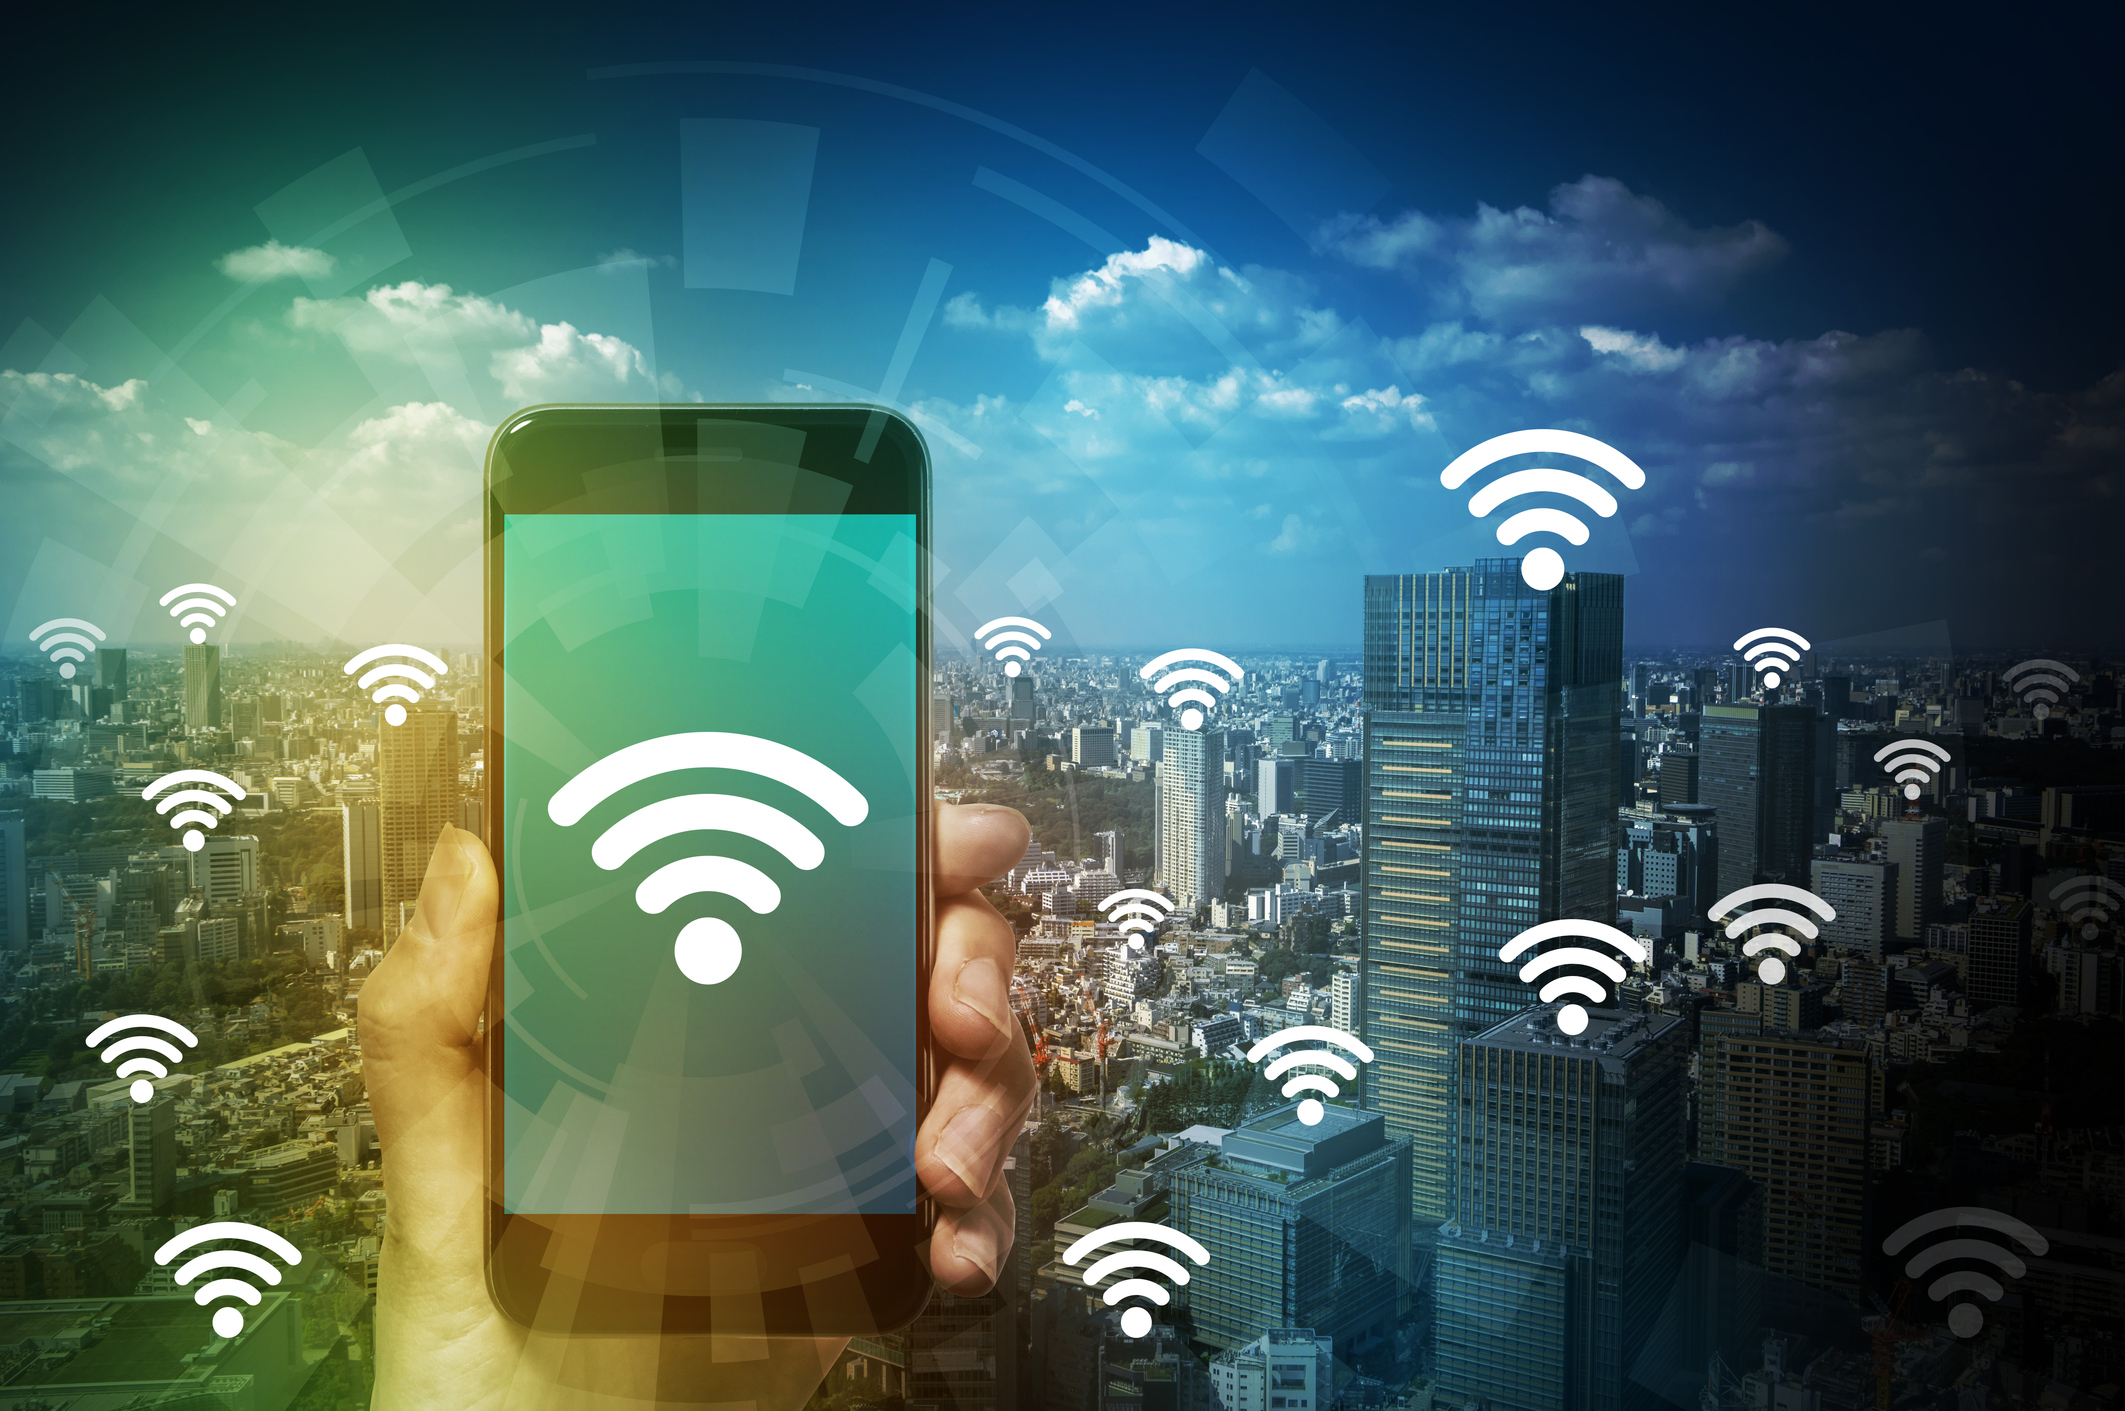 Wi-Fi standards explained and compared